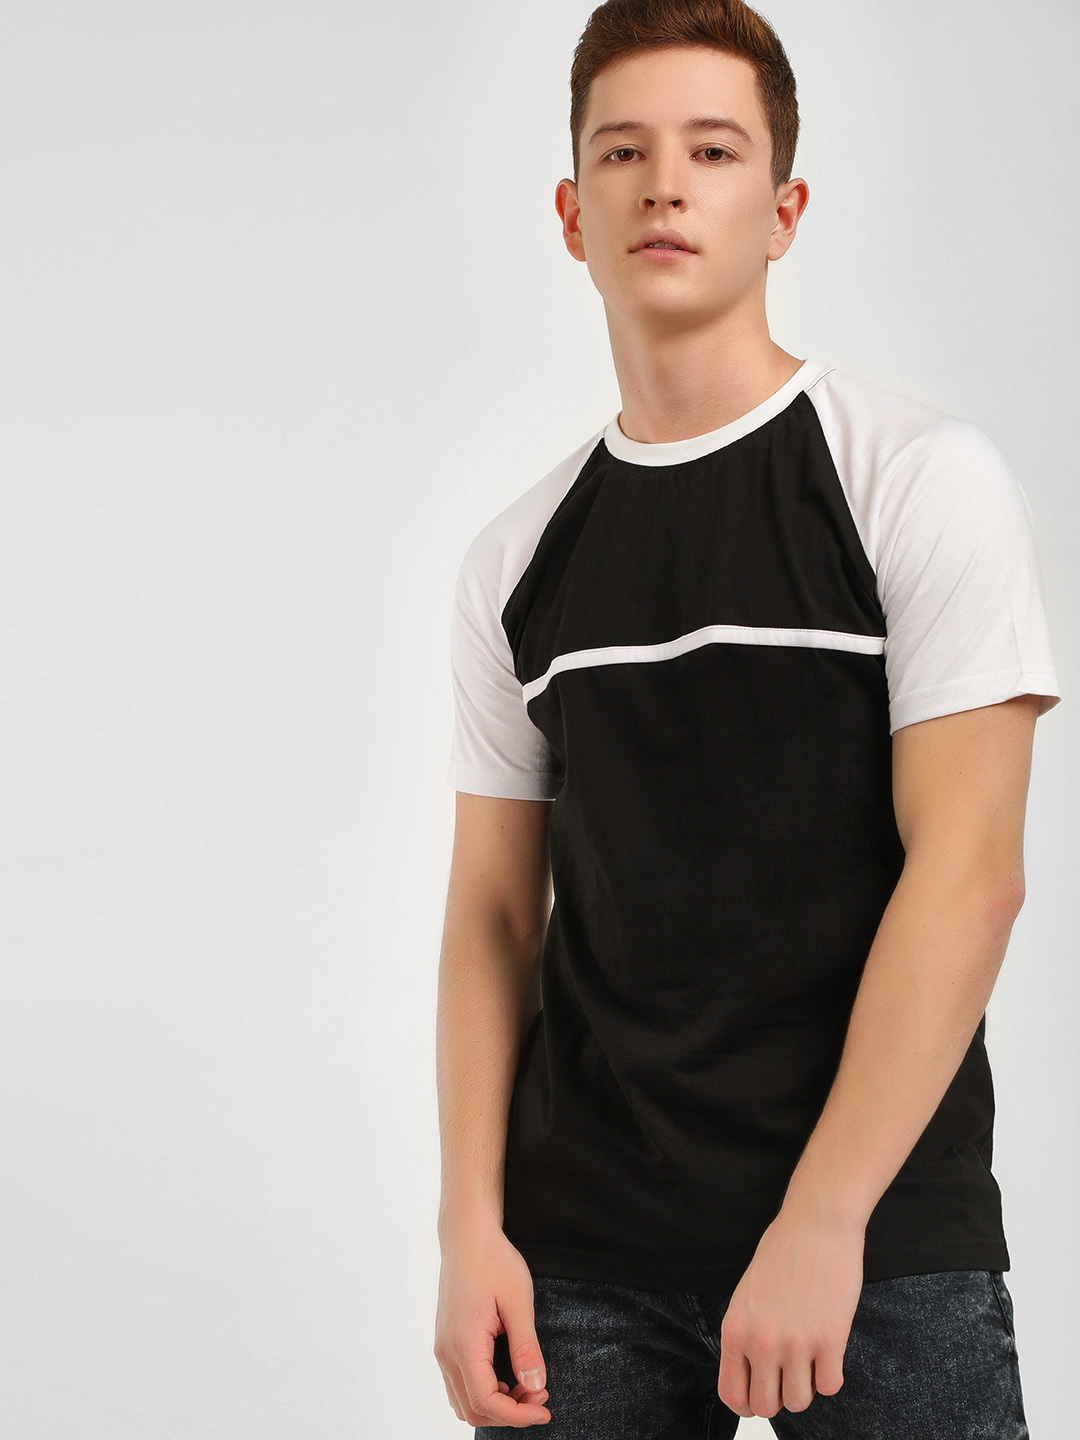 Blotch WHITE/BLACK Colour Block Raglan Sleeve T-Shirt 1